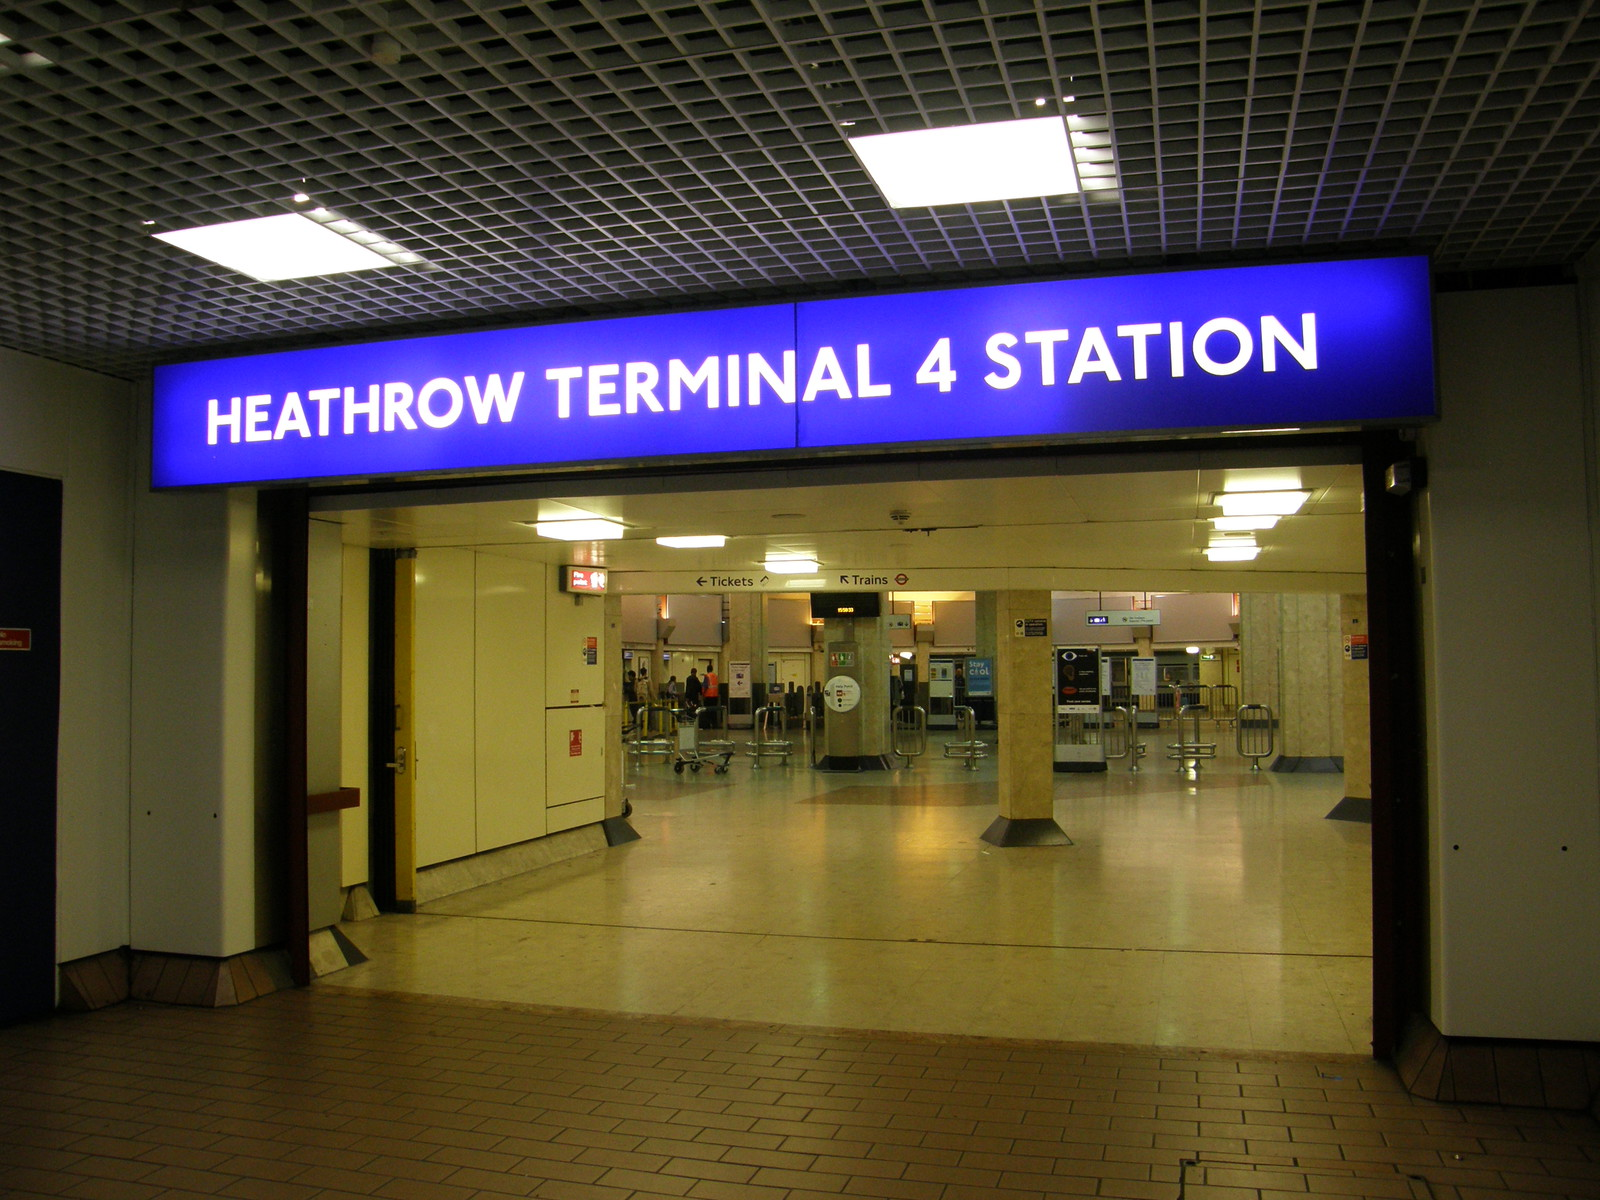 Heathrow Terminal 4 station